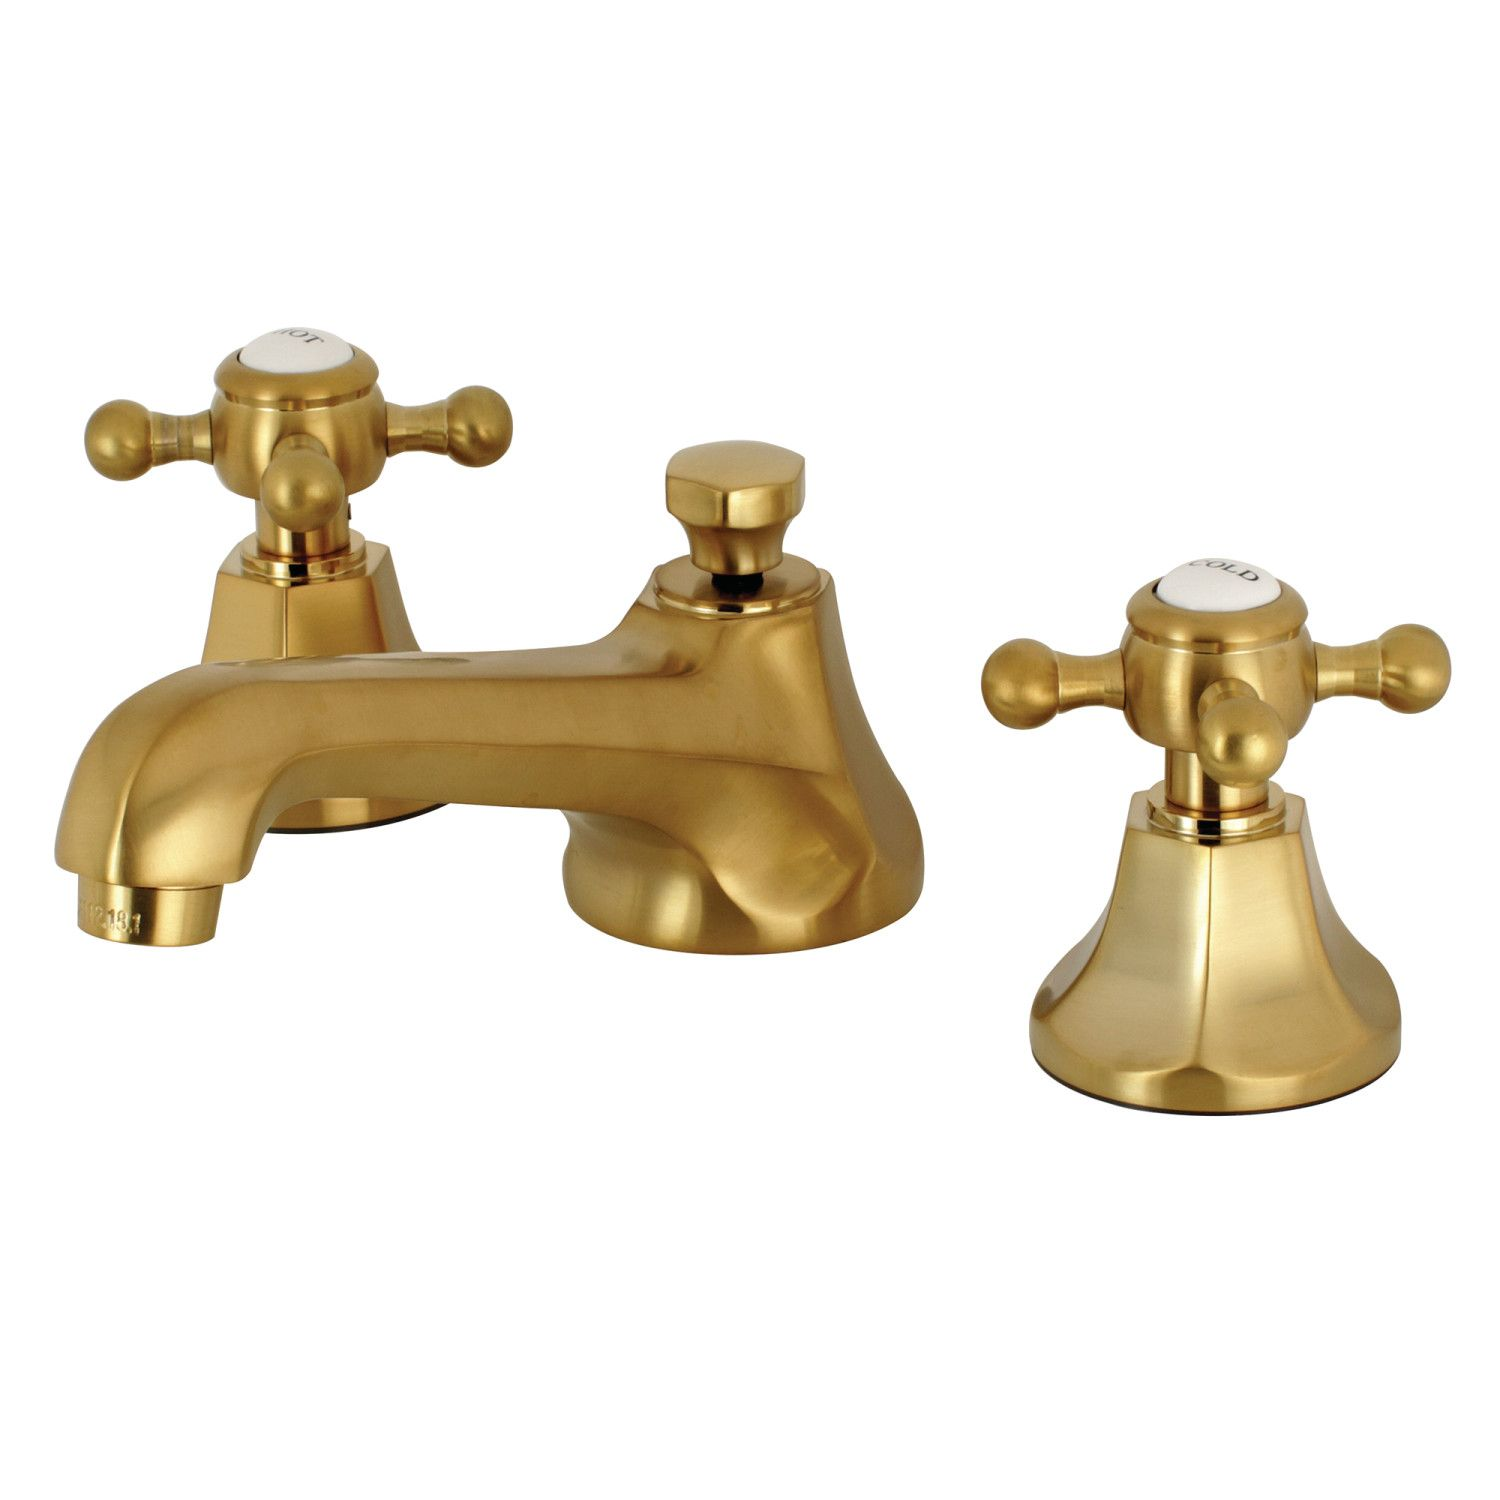 Ks4467bx 8 Inch Widespread Lavatory Faucet Satin Brass In 2018